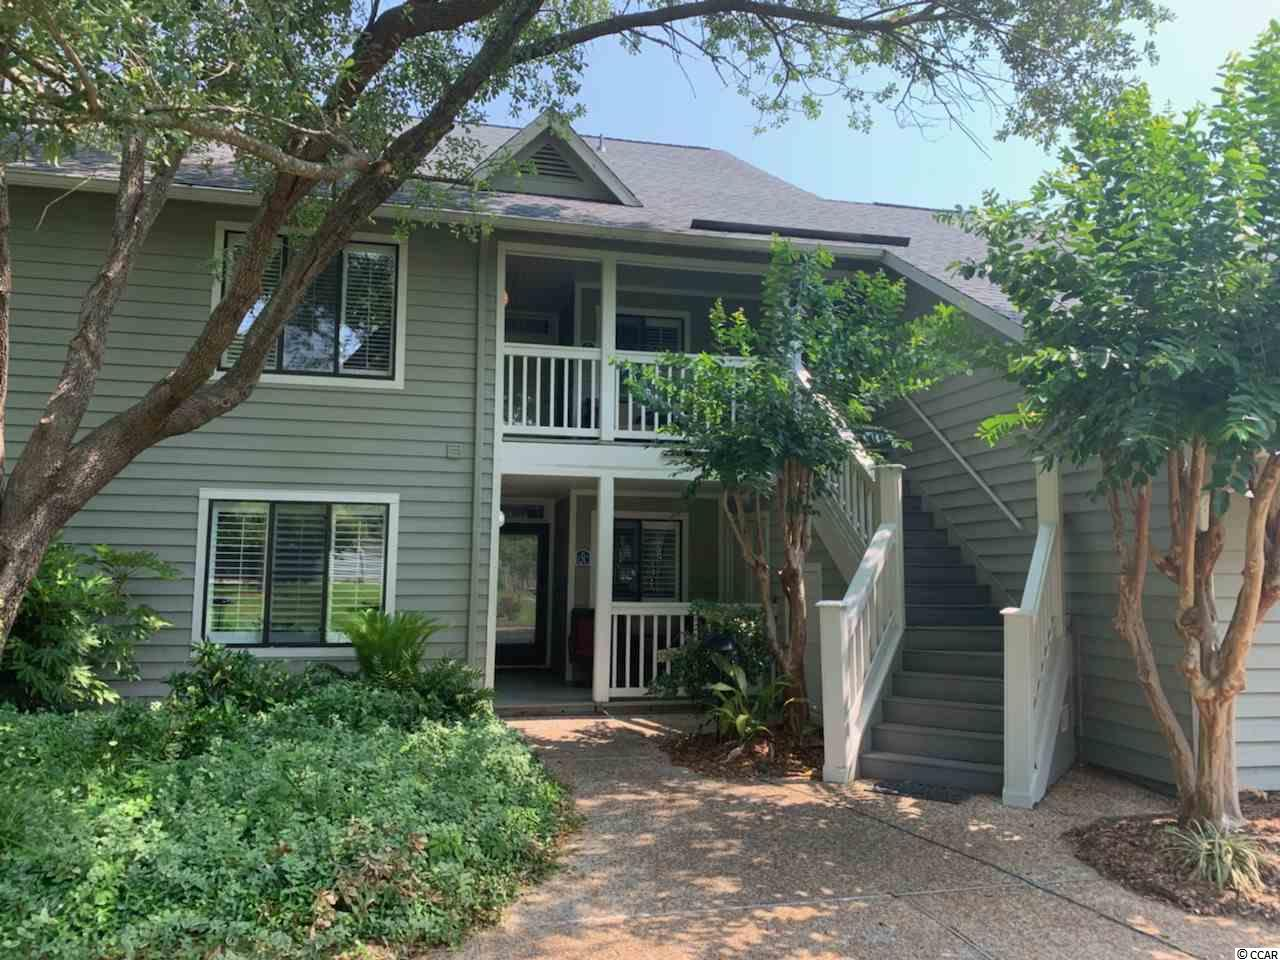 A rare opportunity to own a spacious and completely remodeled unit in Windsor Court in Kingston Plantation. If you have been looking for a unit with a back porch that over looks the Windsor Court pool all while being a golf cart ride to the ocean, this is it. Special bonus that this condo has been completely updated and is turn key ready for you to either use as a income producing property or call it home.  This unit has been freshly painted from floor to ceiling and even the trim. The spacious kitchen boasts an eat in area, new granite, and new stainless appliances. Waterproof woodgrain flooring was added as not only a style upgrade but with beach going and easy up keep as well.  Both bathrooms have been improved with granite counter tops and new glass shower doors. The list of new features continues with the little extras that make high impact including ceiling fans, door hardware, plantation shutters and a new water heater. If you are impressed so far than the custom furnishings and hand picked decor will be the things that make you feel truly at home. Walking into this unit you feel like you are walking into a model home and that home should be yours. You must see it to appreciate it so schedule your appointment today!